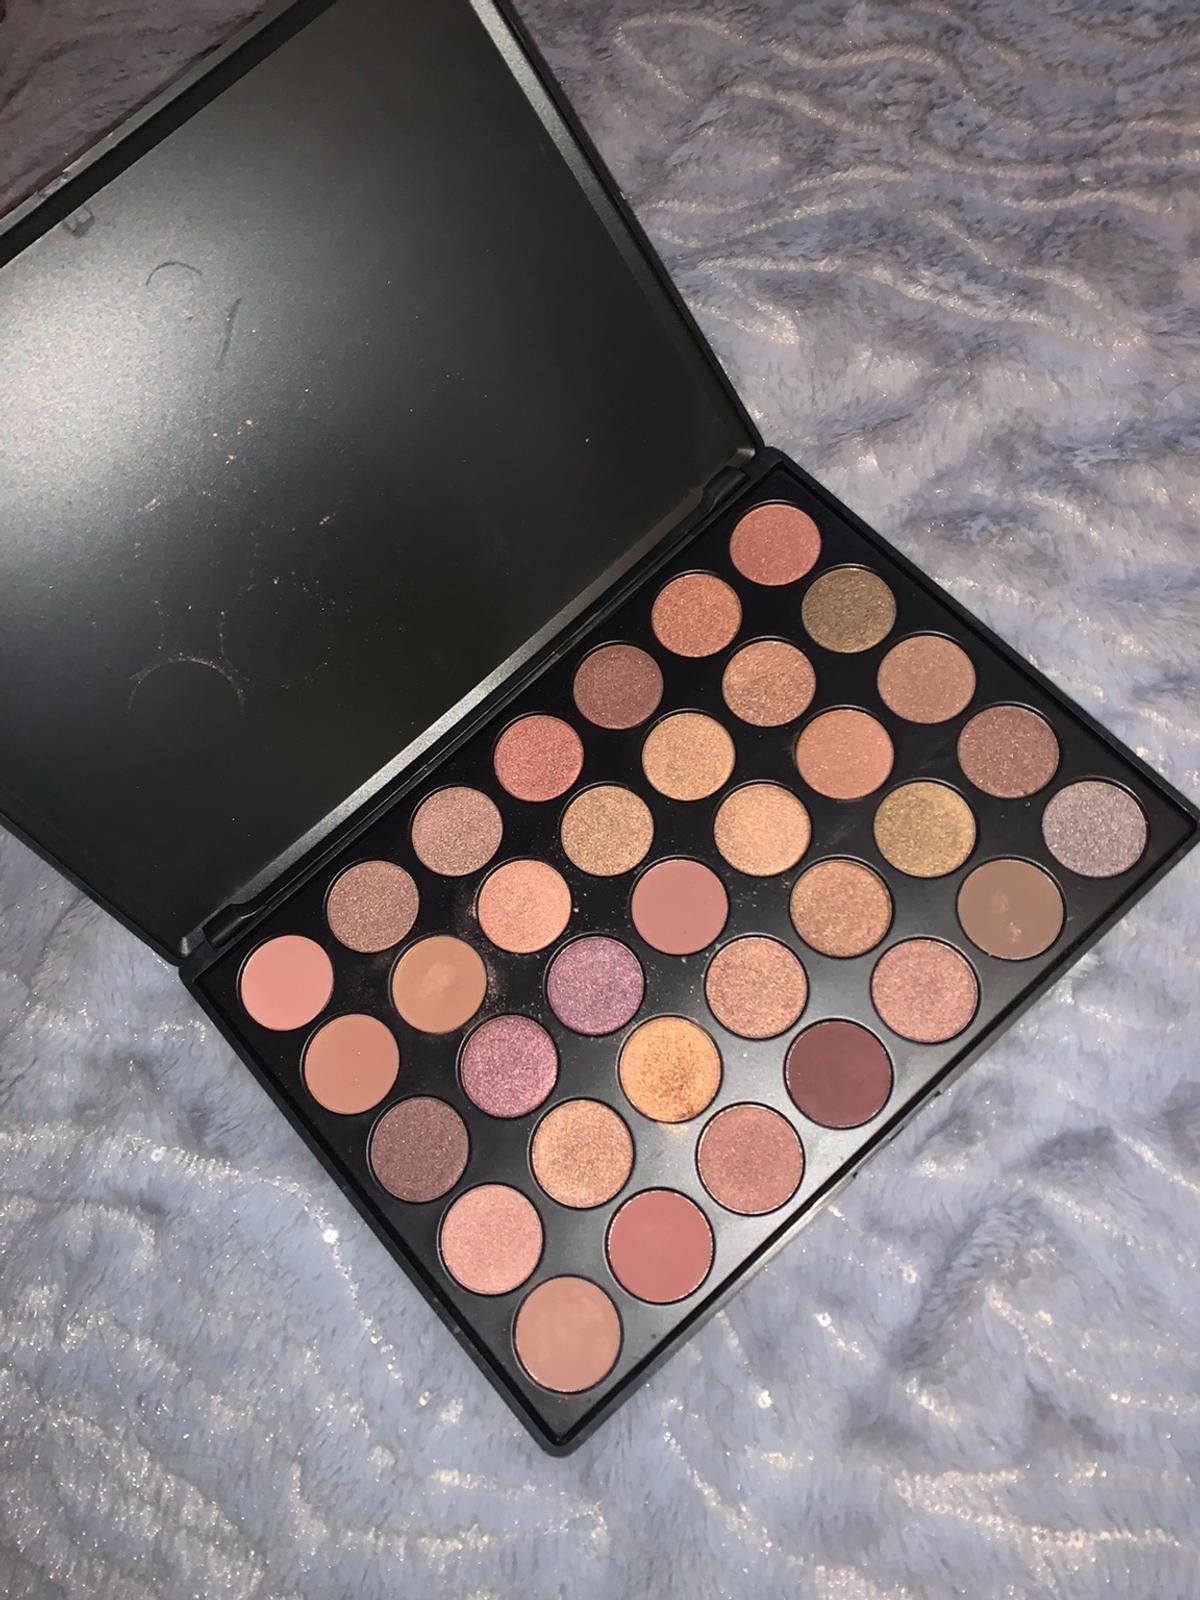 Used but not much! Can hardly tell it's been used all eyeshadows have a lot of use in it, only selling as I don't wear eyeshadow much! Open to offers